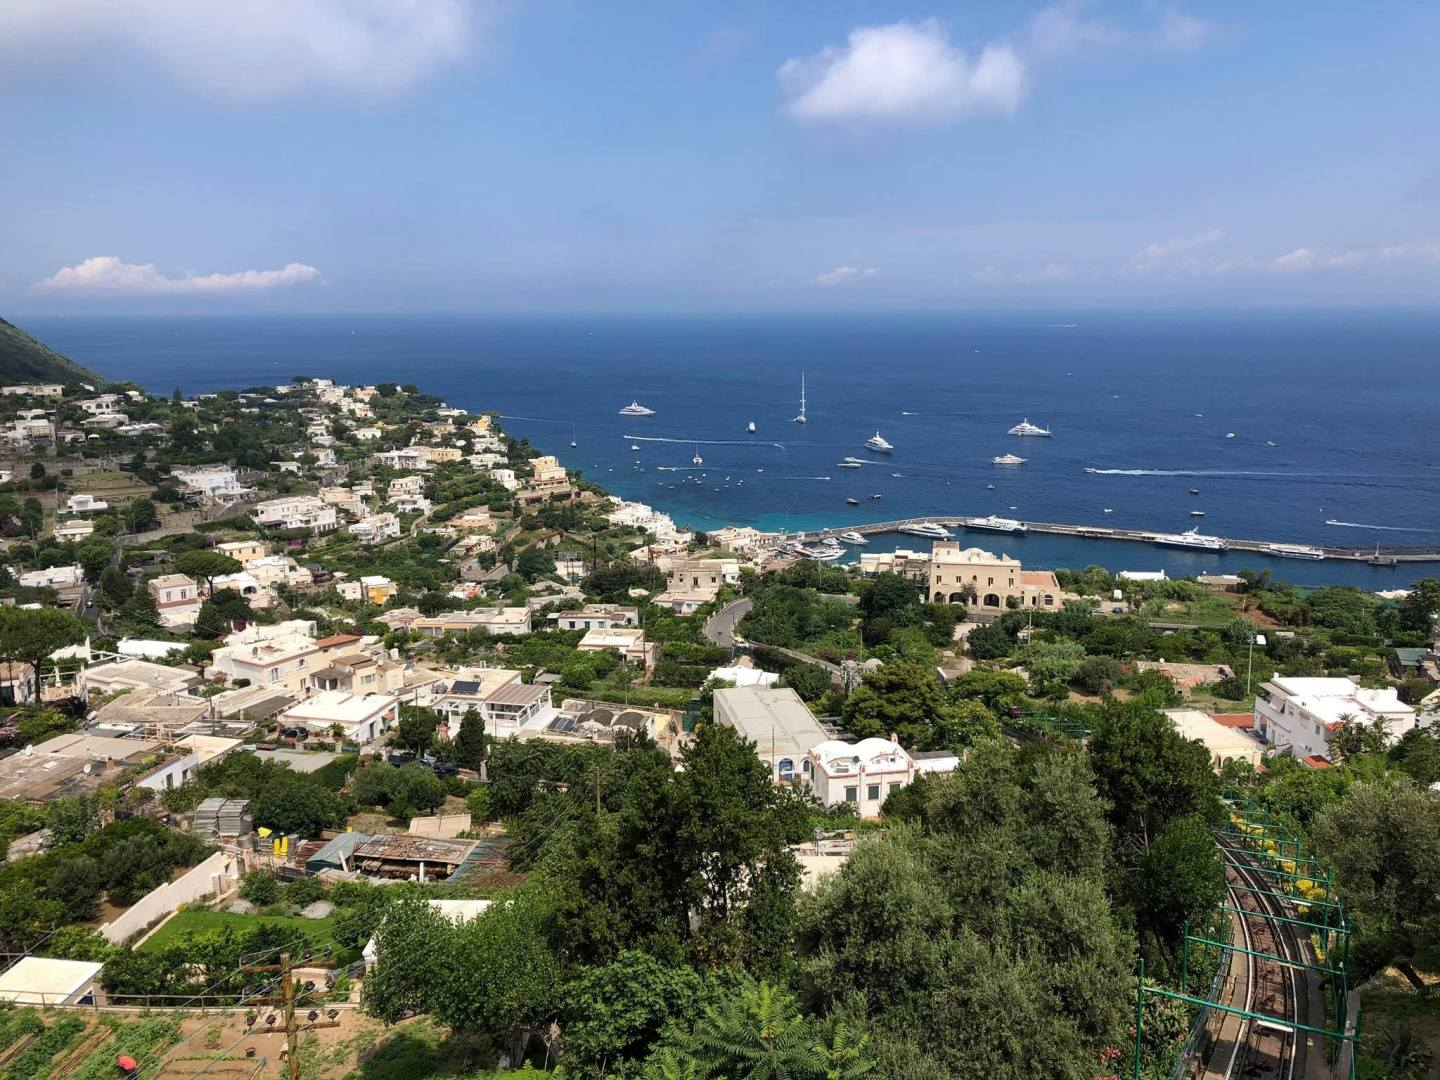 View Our Over The Bay Of Naples, Capri